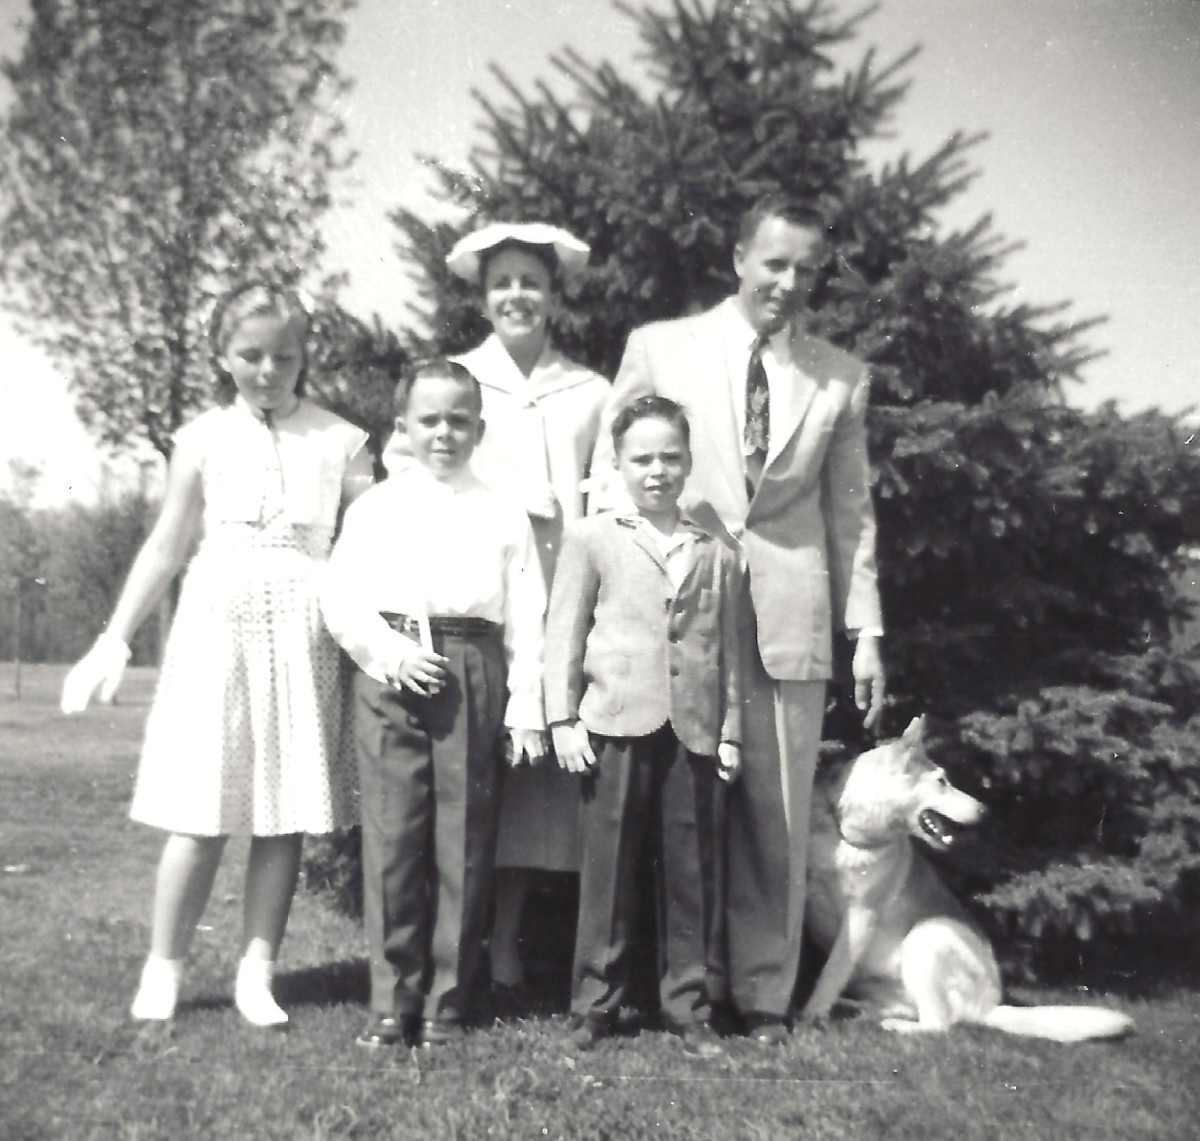 My family in June of 1958.  My brother John is holding his first Holy Communion candle.